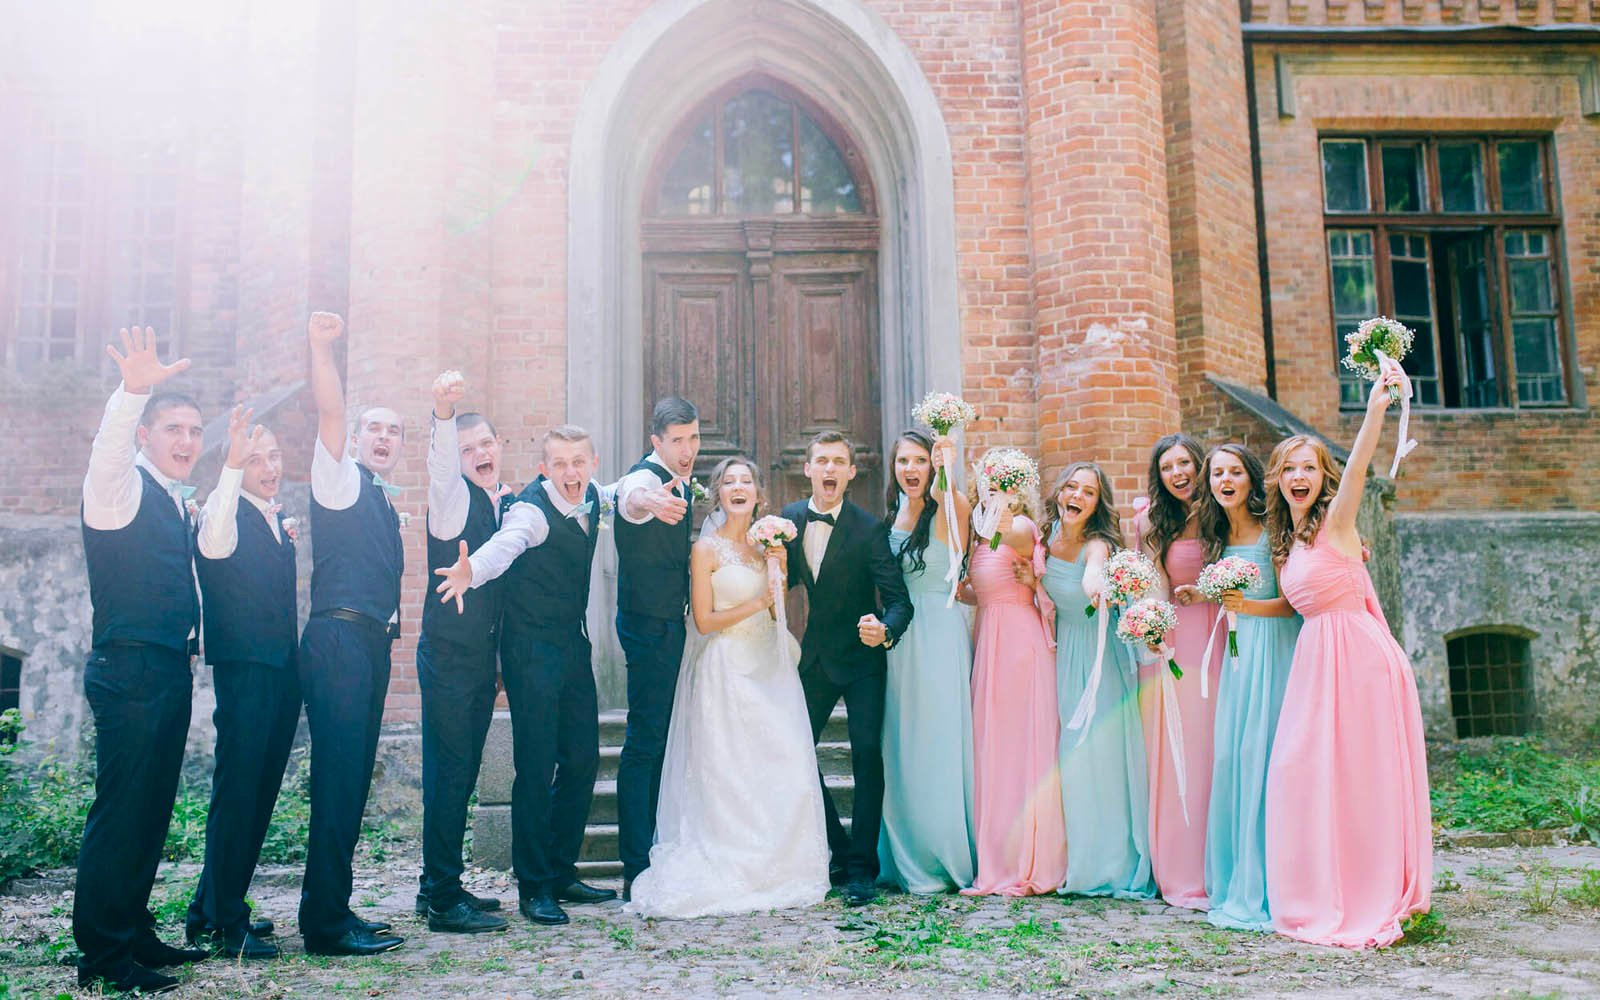 Bridesmaids and Groomsmen posing for fun photo at wedding with bride and groom